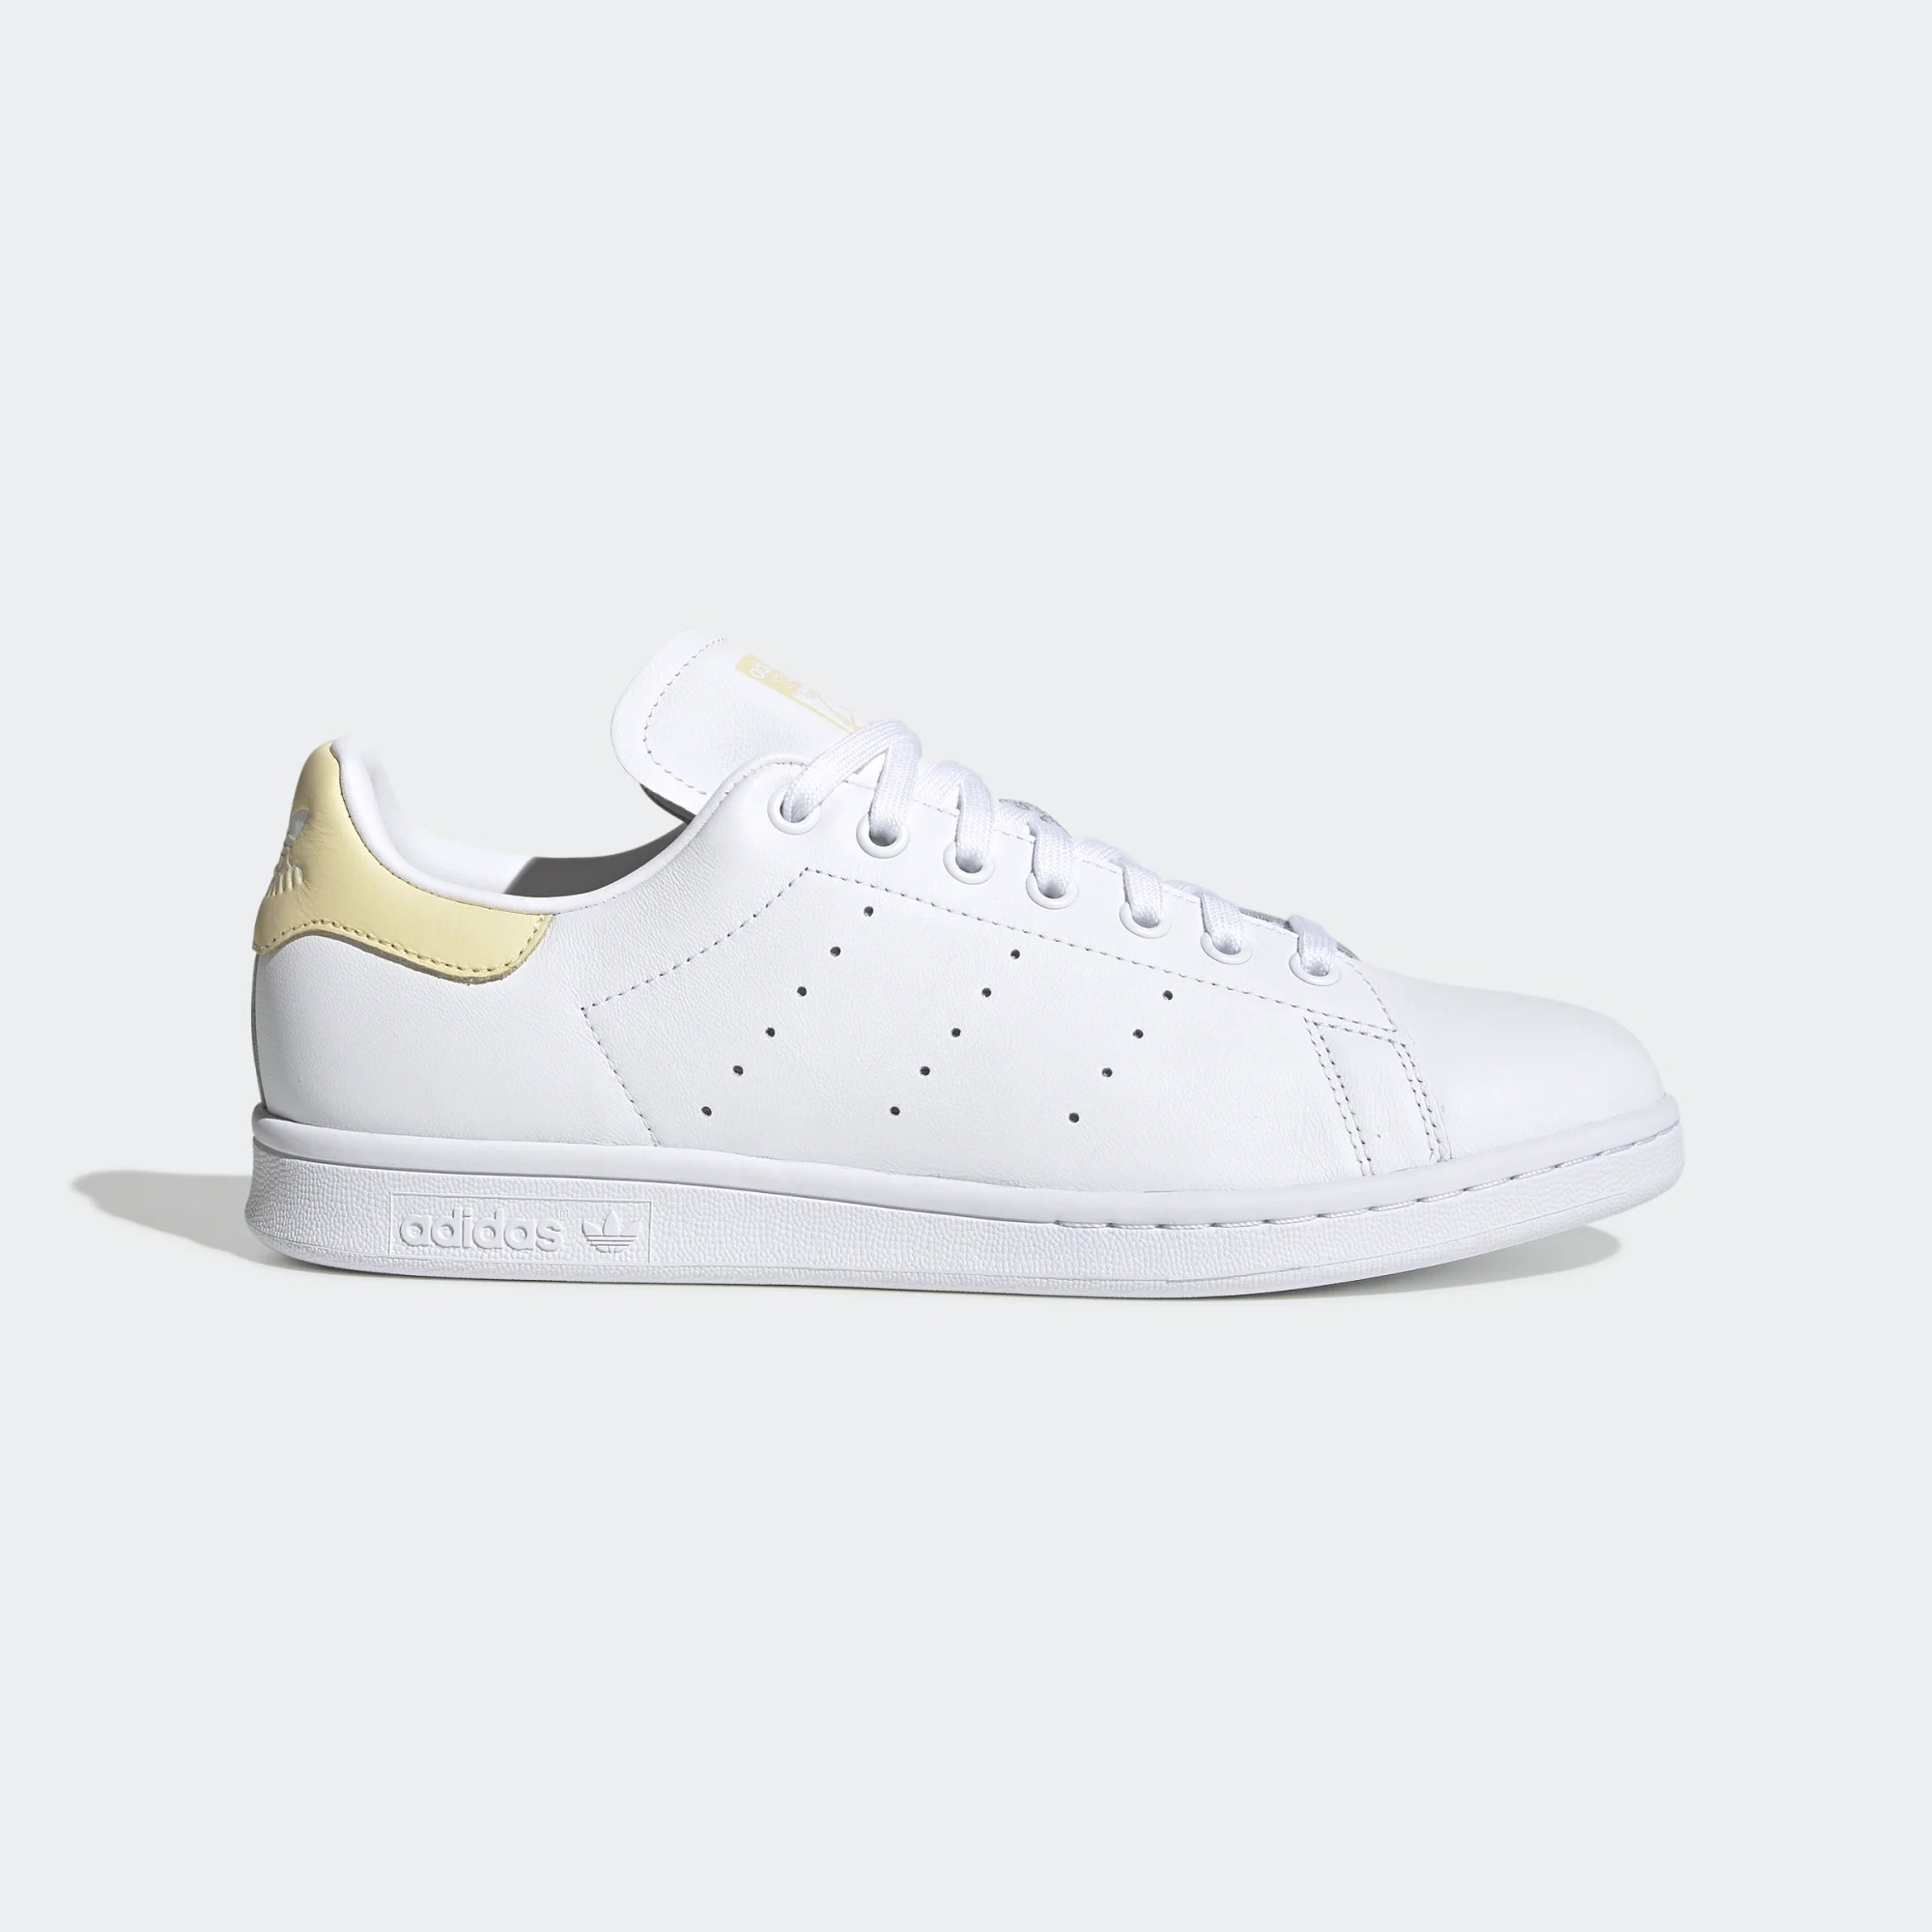 Adidas Stan Smith Footwear White/Easy Yellow - EF4335